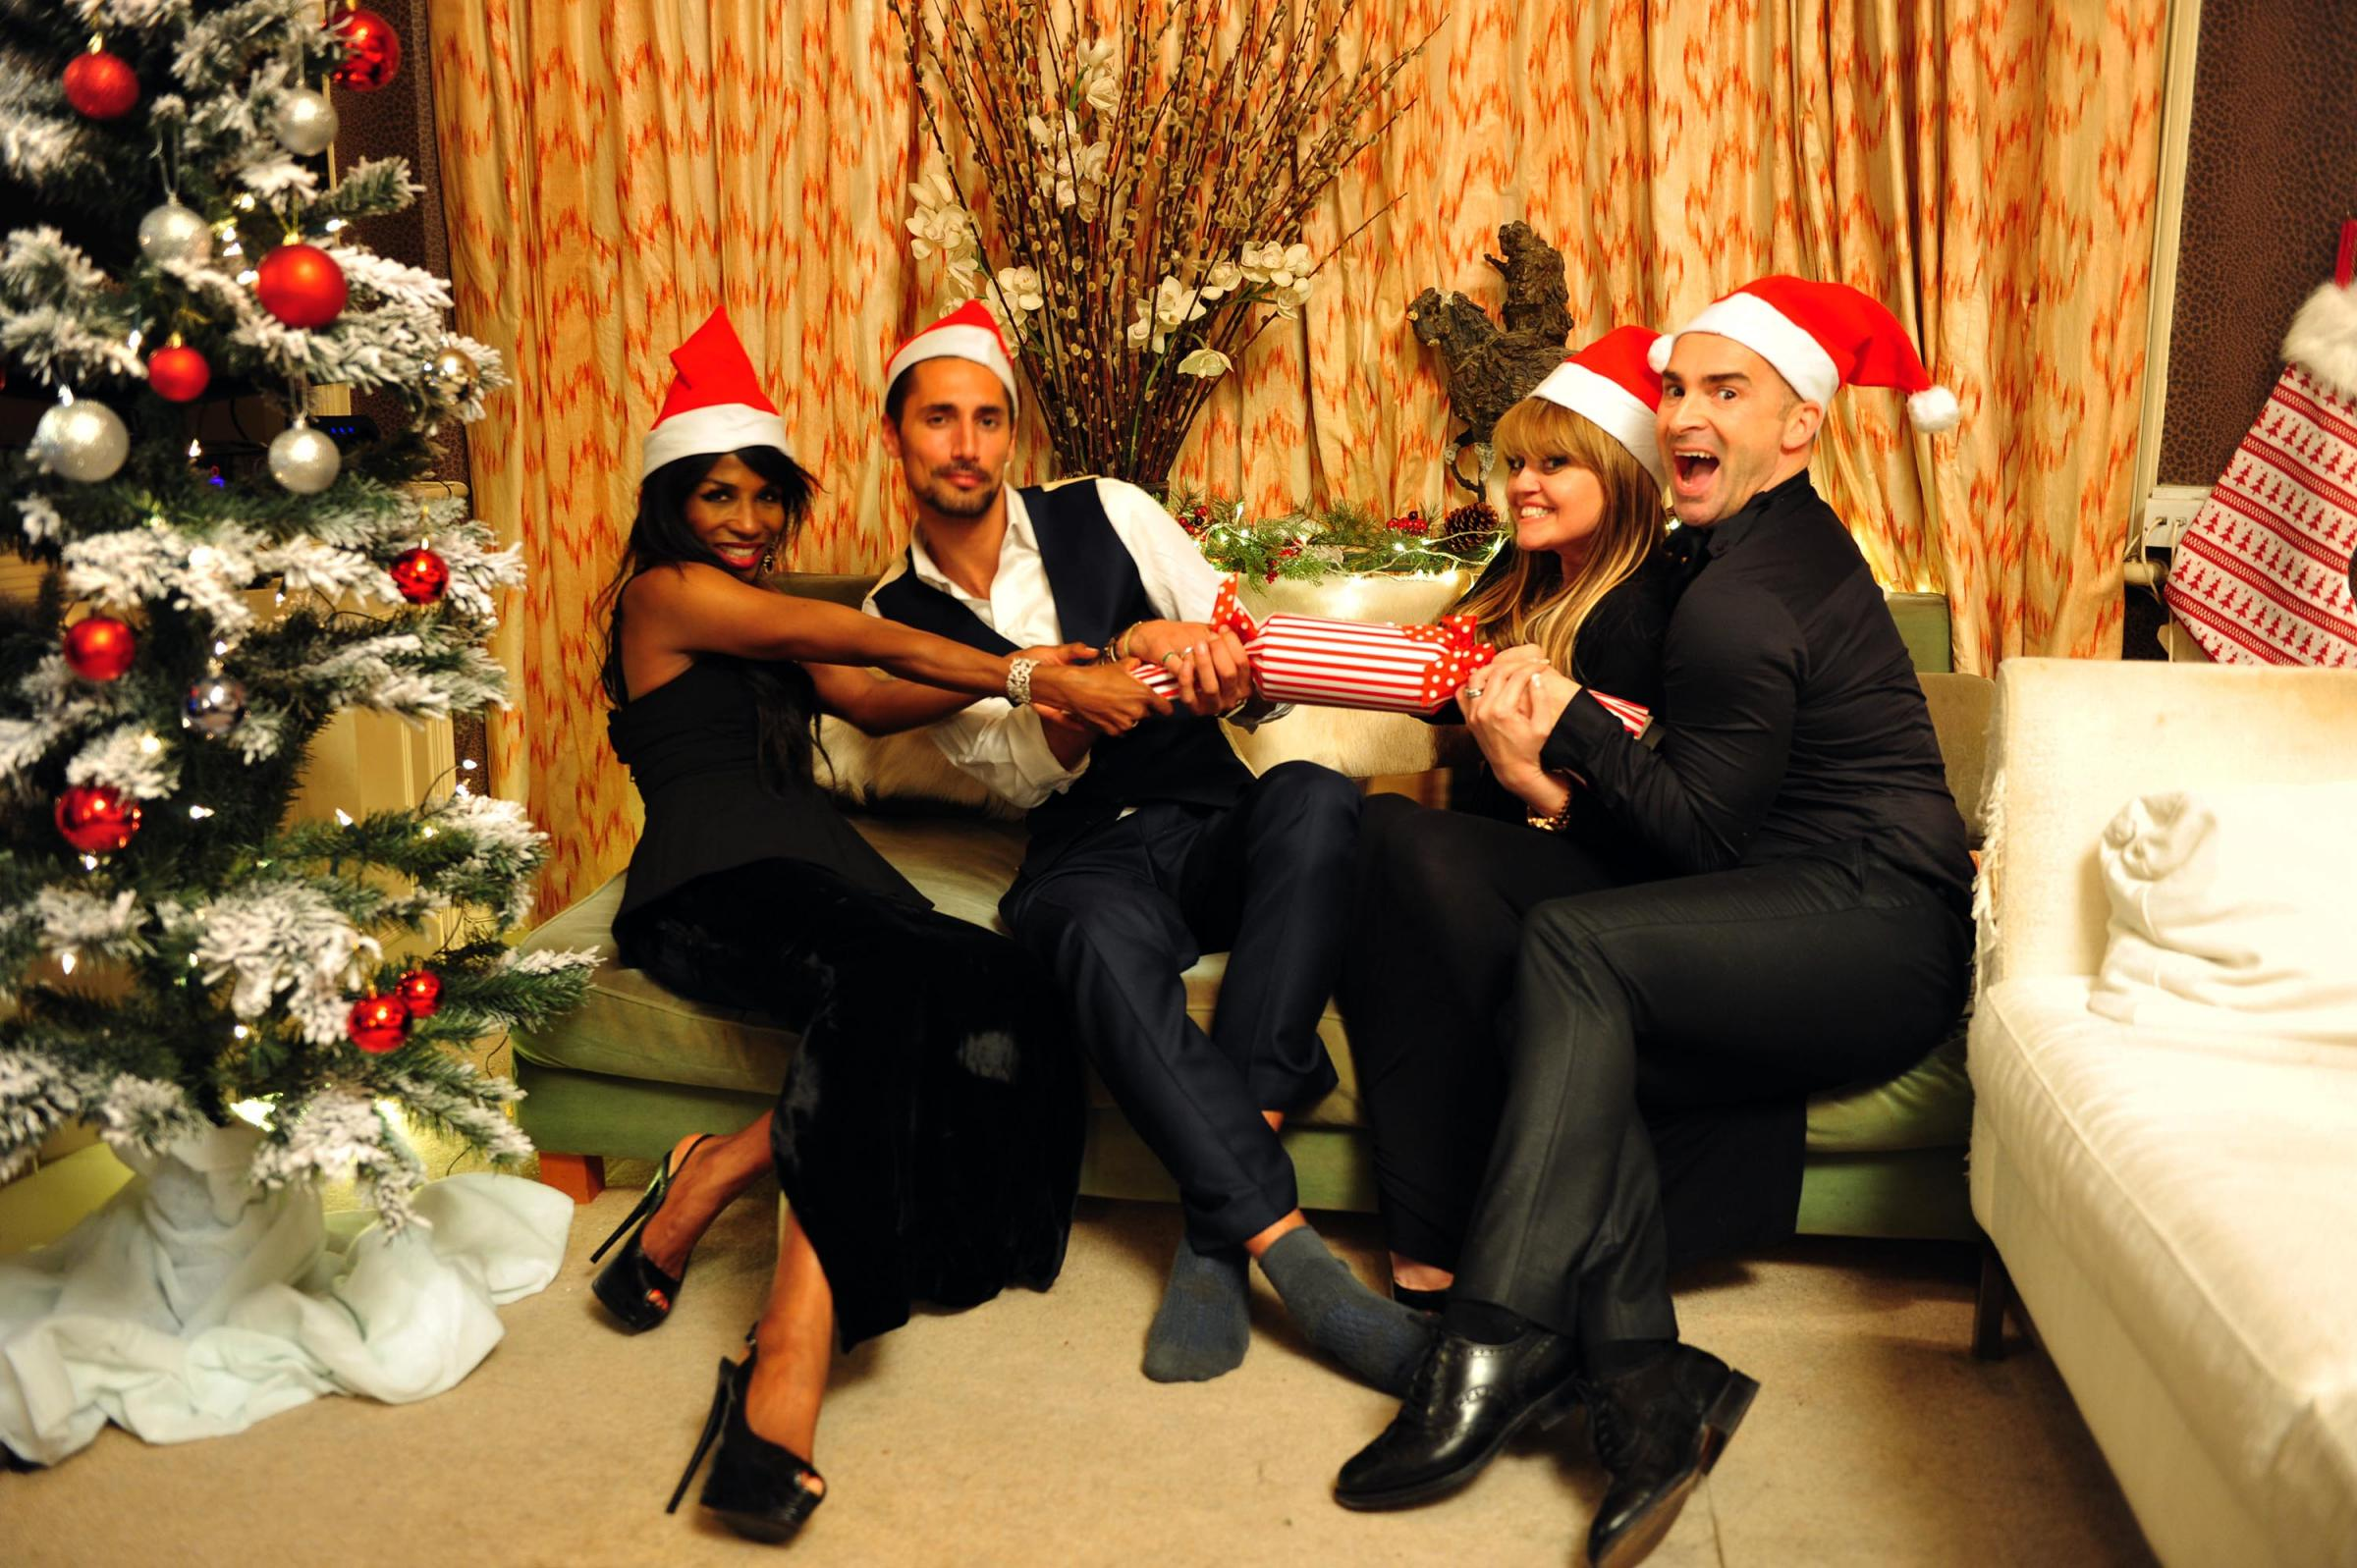 FESTIVE SPECIAL: From left, Sinitta, Hugo Taylor, Danniella Westbrook and Louie Spence in Celebrity Come Dine With Me